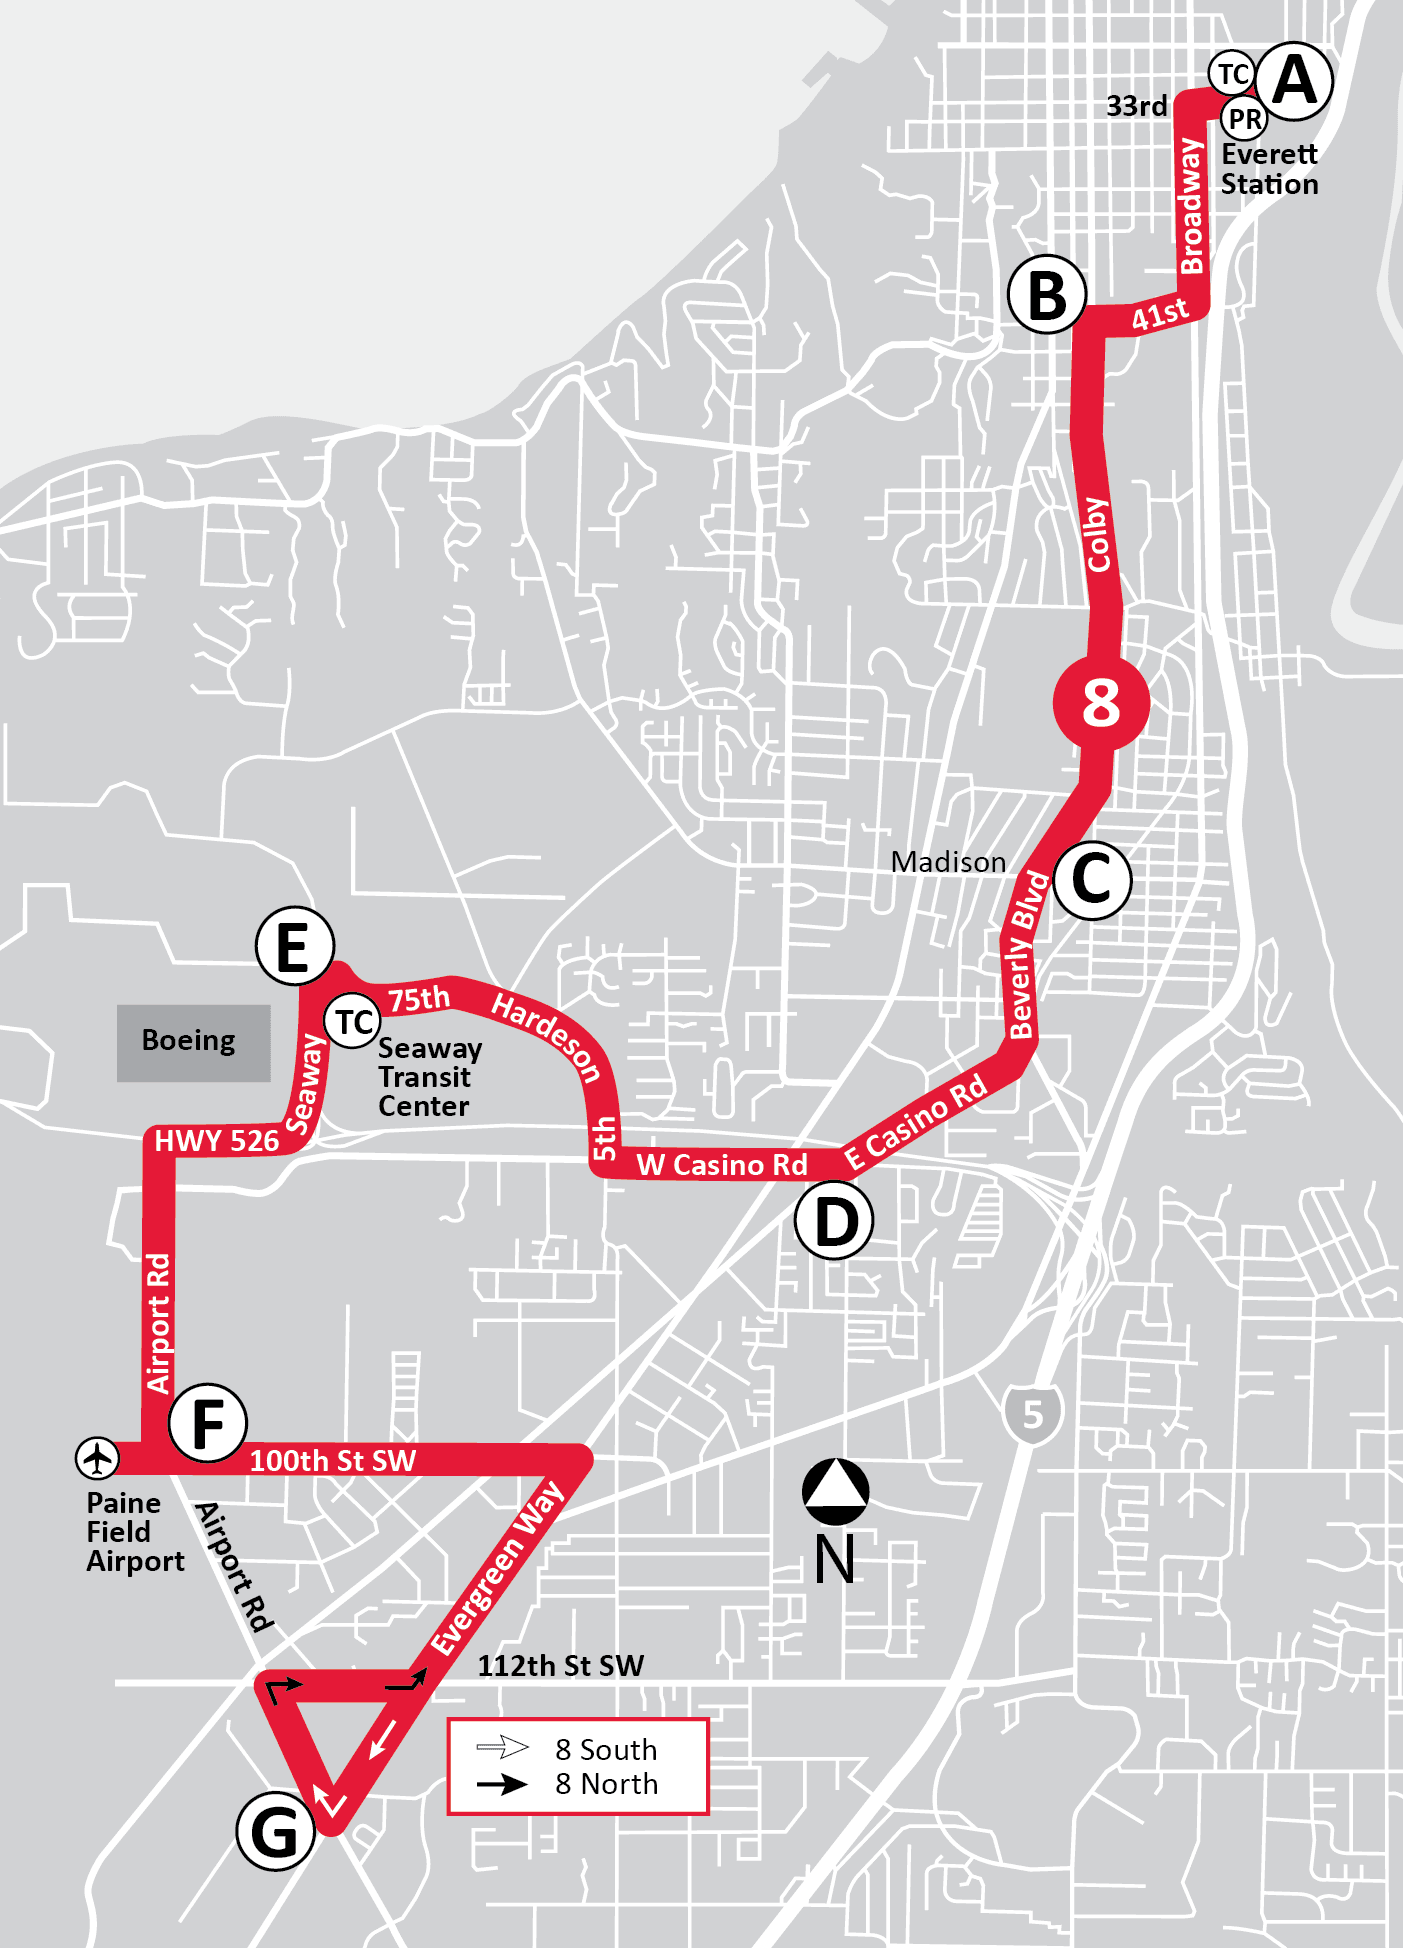 Route 8: S to Airport Road & N to Everett Station | Everett